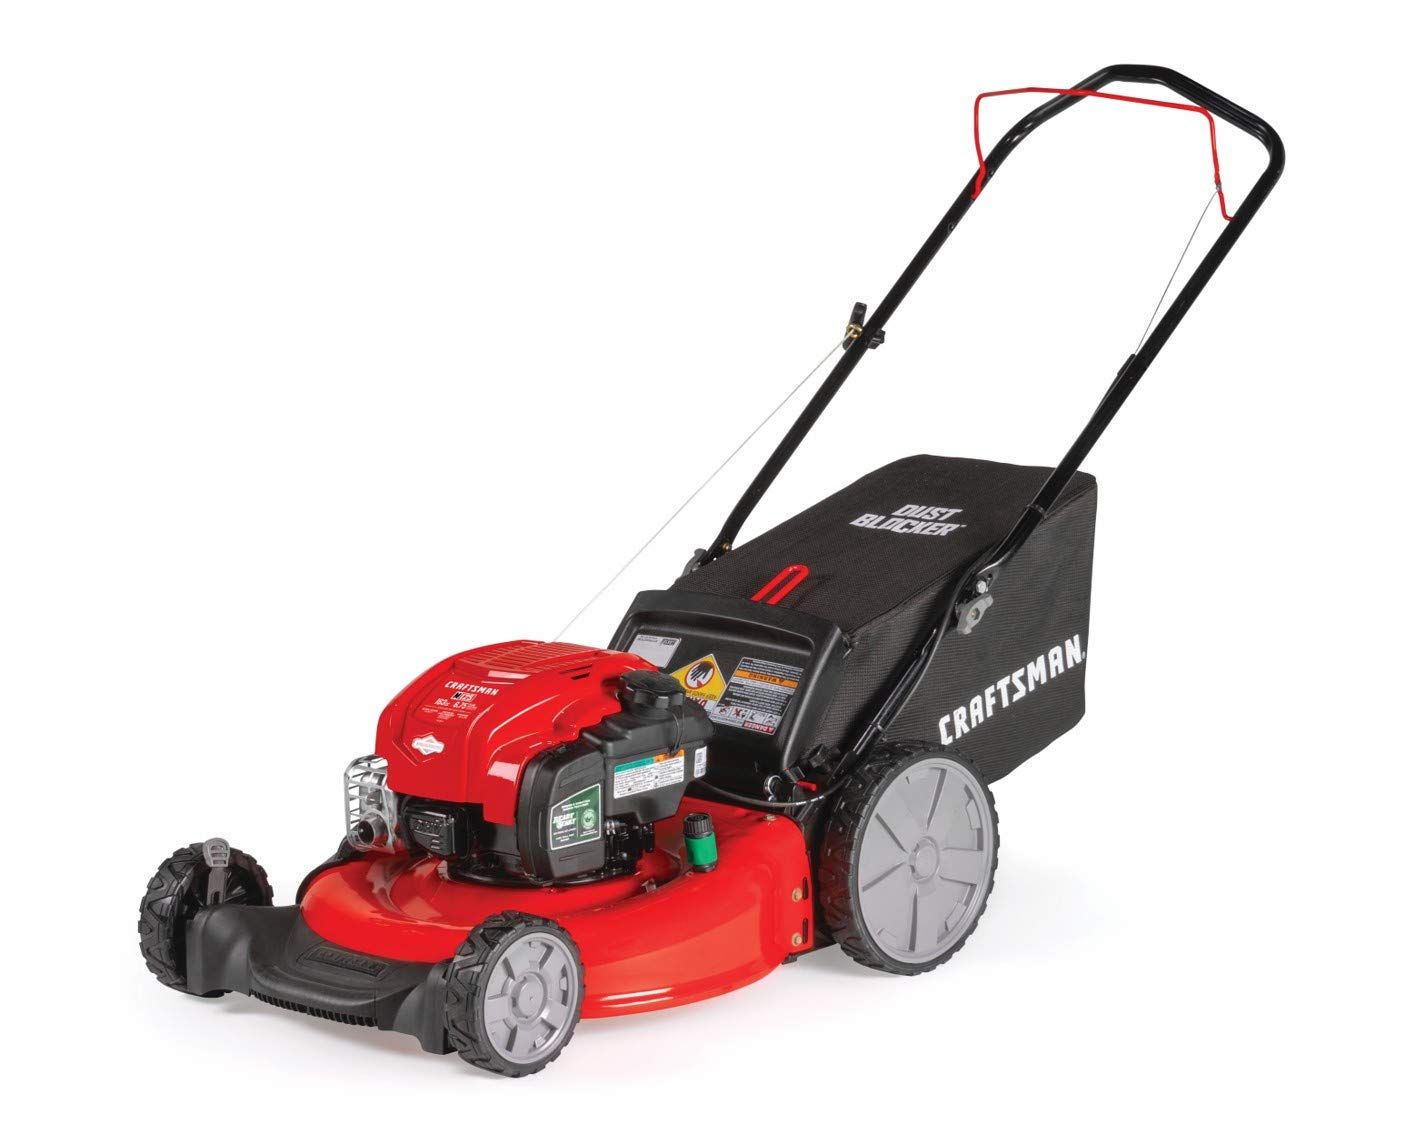 Craftsman M125 163cc Briggs & Stratton 675 exi 21-Inch 3-in-1 Gas Powered Push Lawn Mower with Bagger by Craftsman